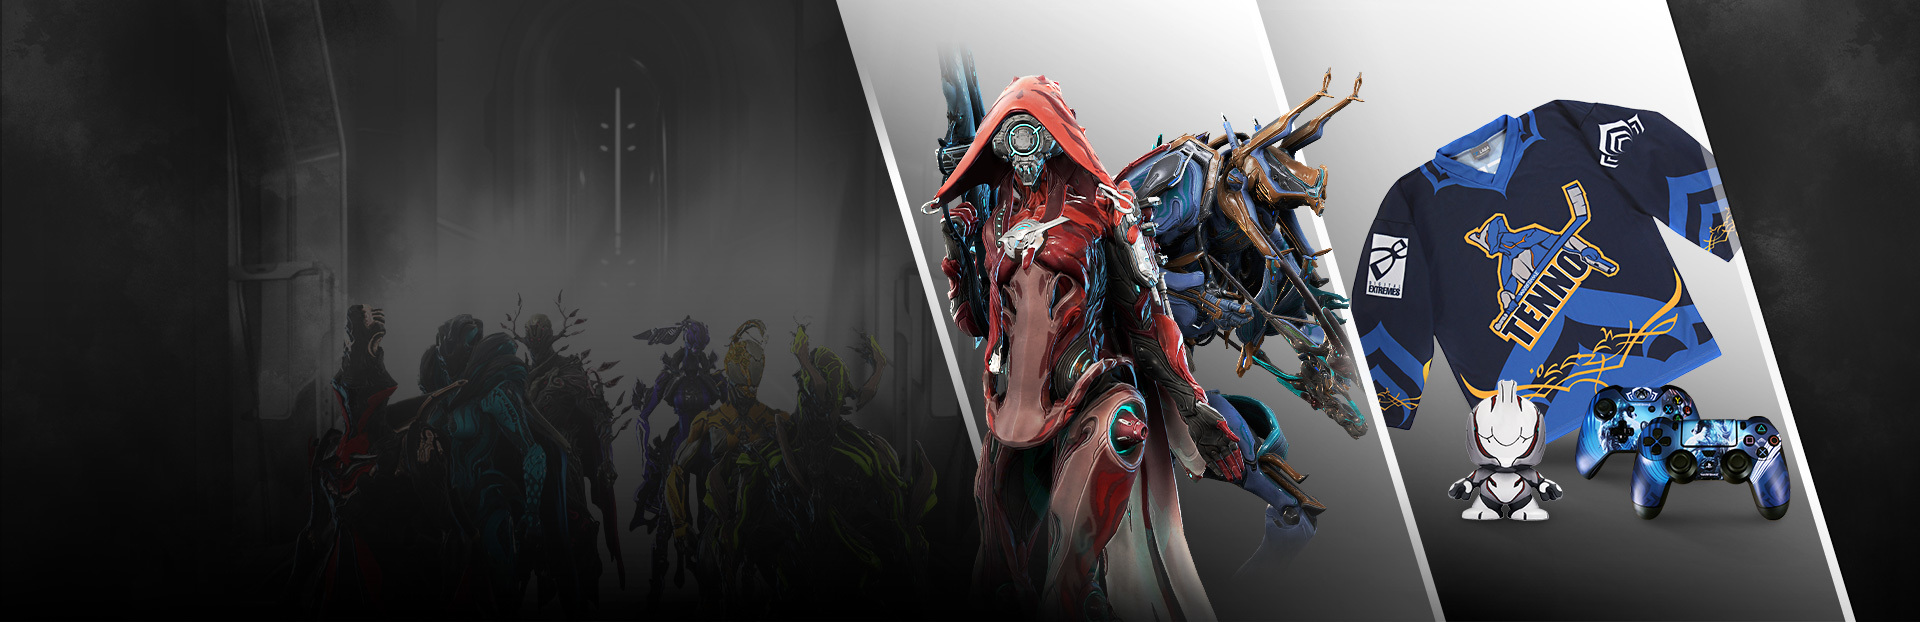 Warframe Nova Fashion Frame / Nova corpra skin alter the appearance of nova, including nova prime warframe, with special patterns and colors.